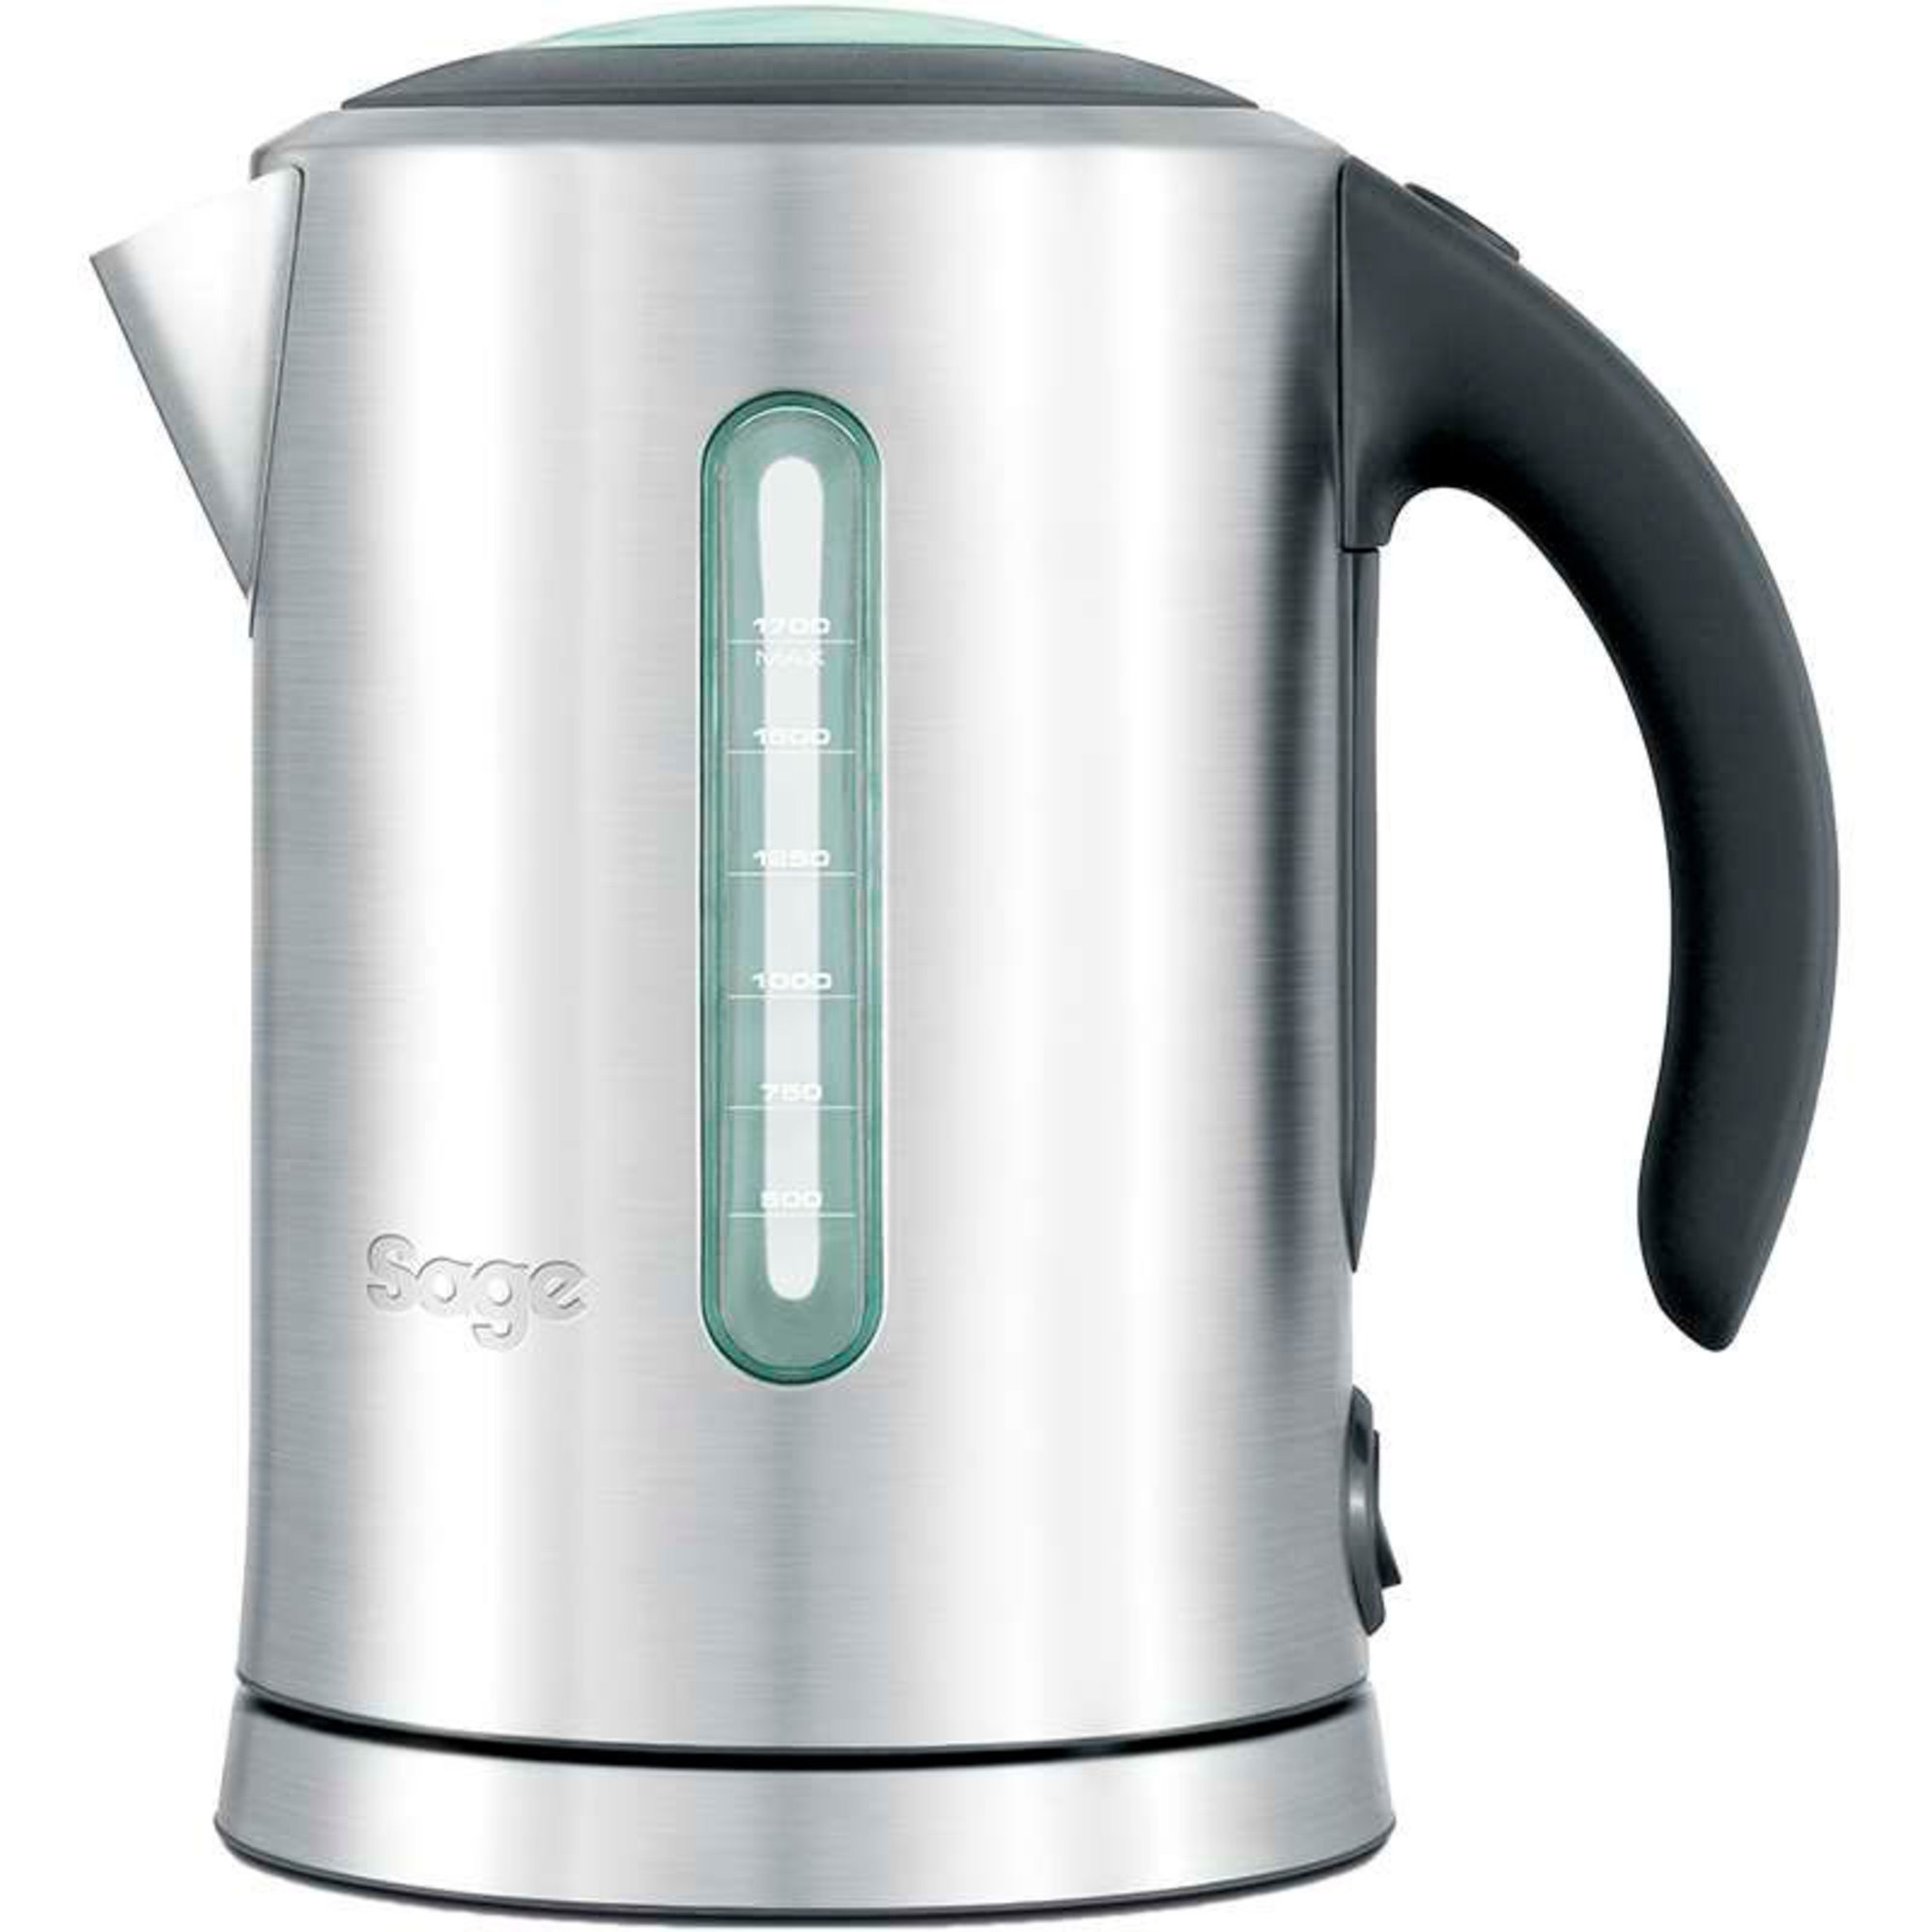 Sage Vattenkokare 1.7L – The Soft Open Kettle